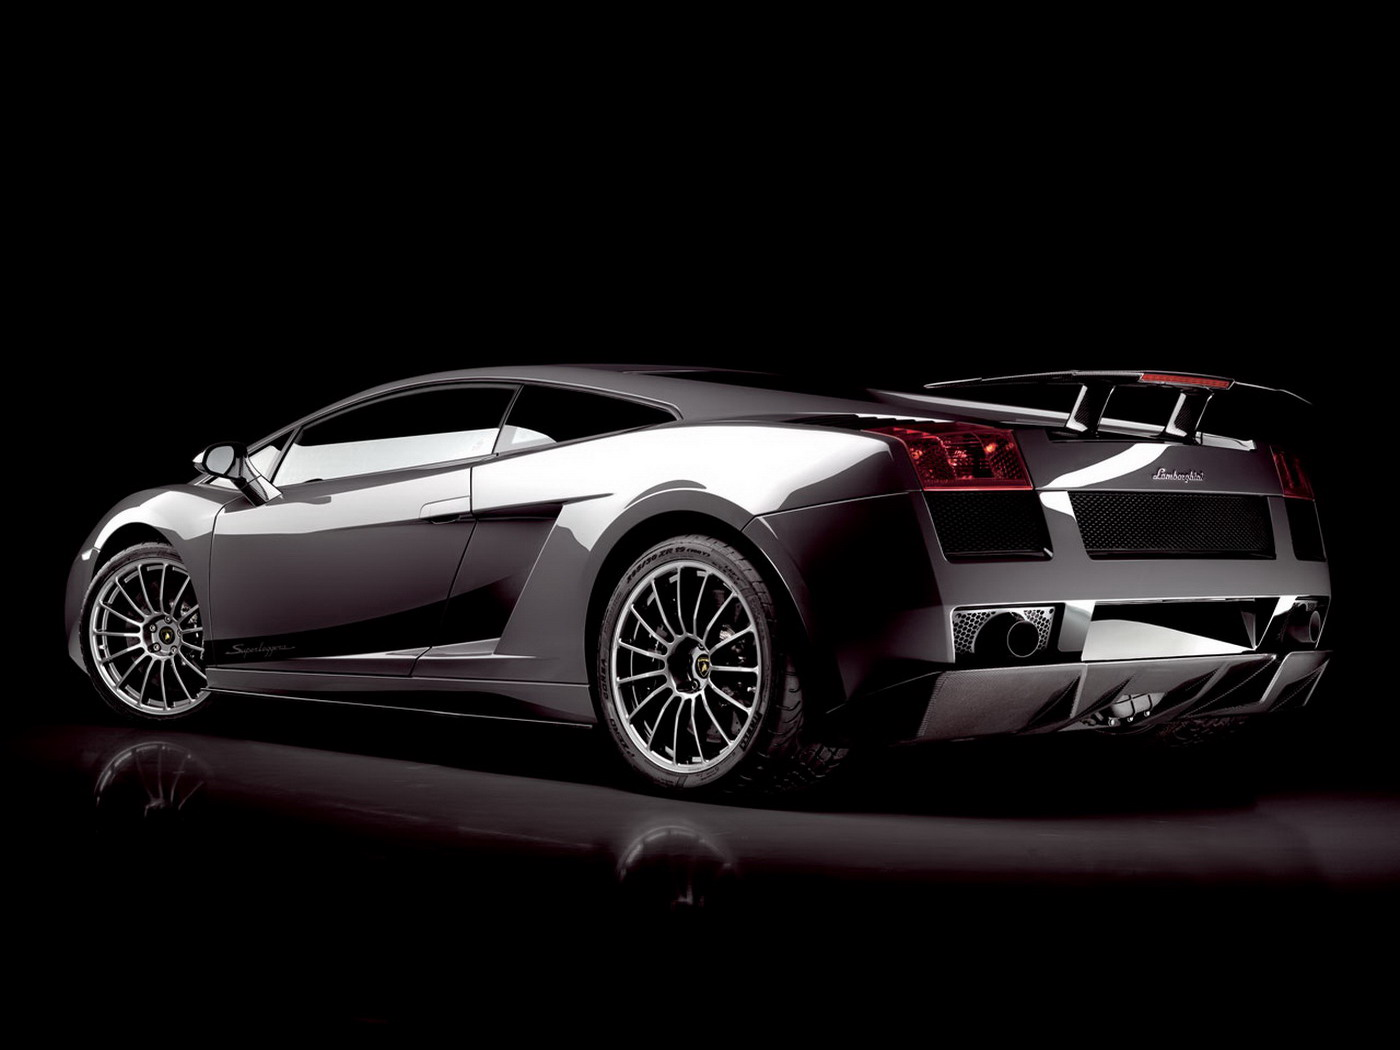 Click To See World: Amazing car wallpapers hd